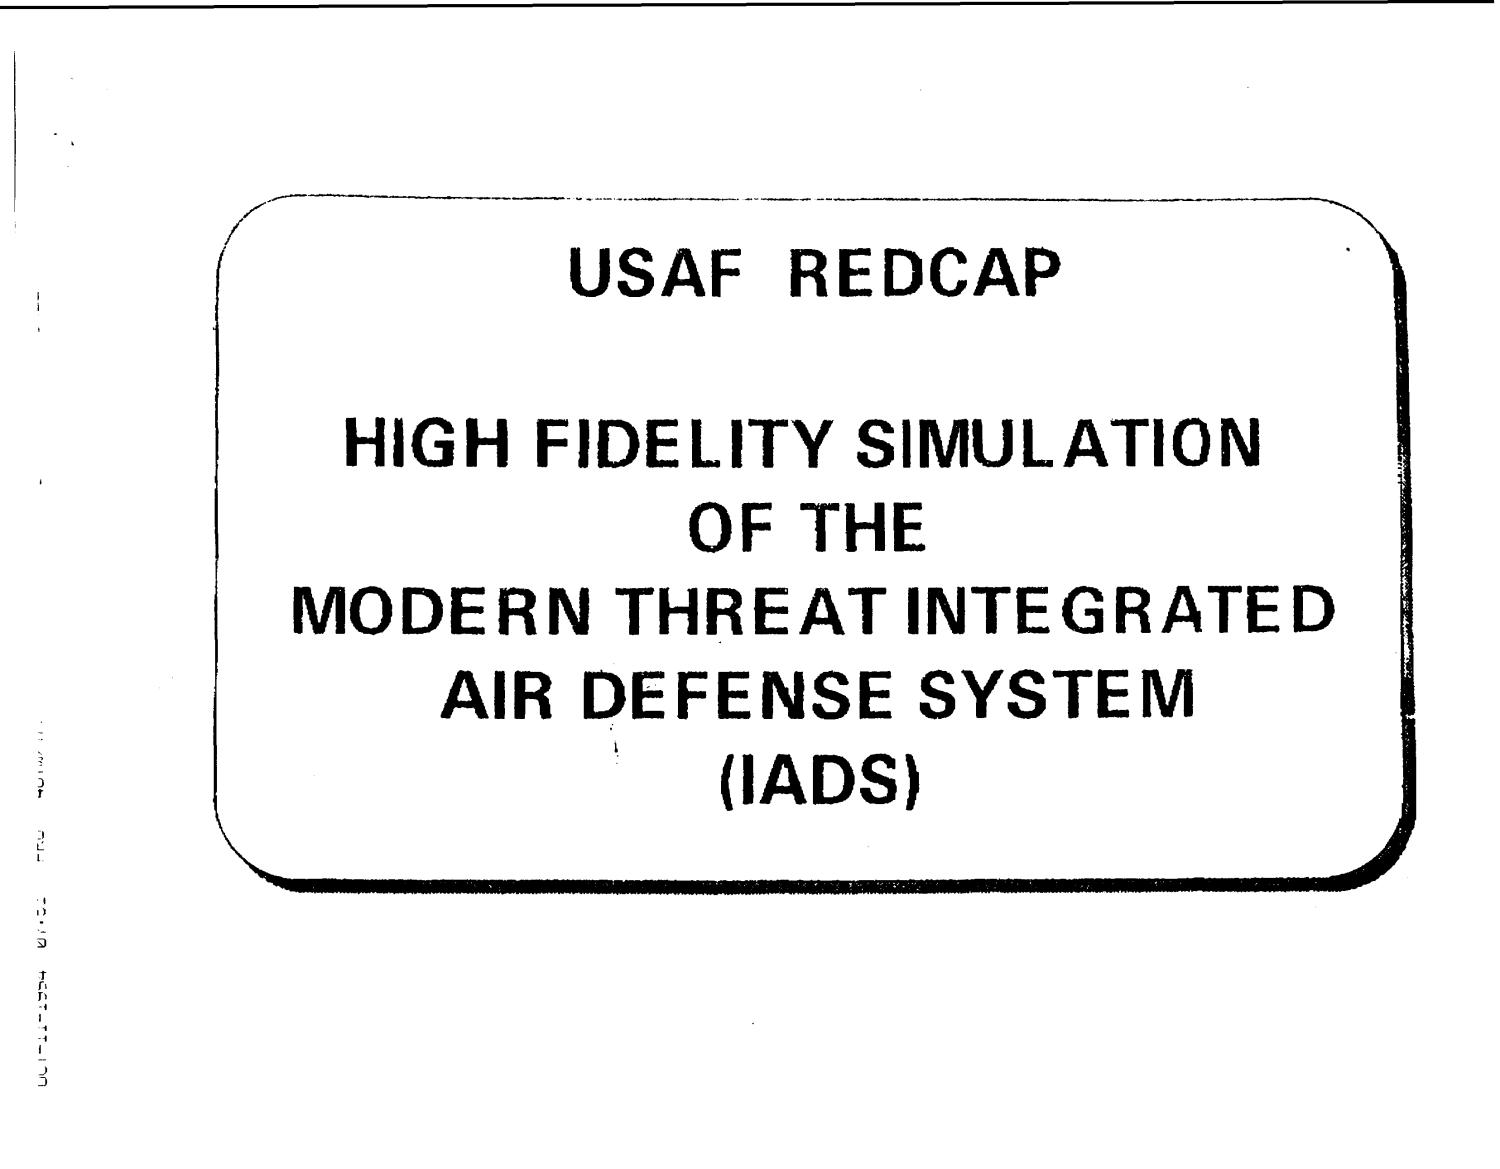 REDCAP Briefing; ALC, OK; NAS Atlanta, GA; SPAWAR, Capitol Region, June 1995                                                                                                      [Sequence #]: 3 of 178